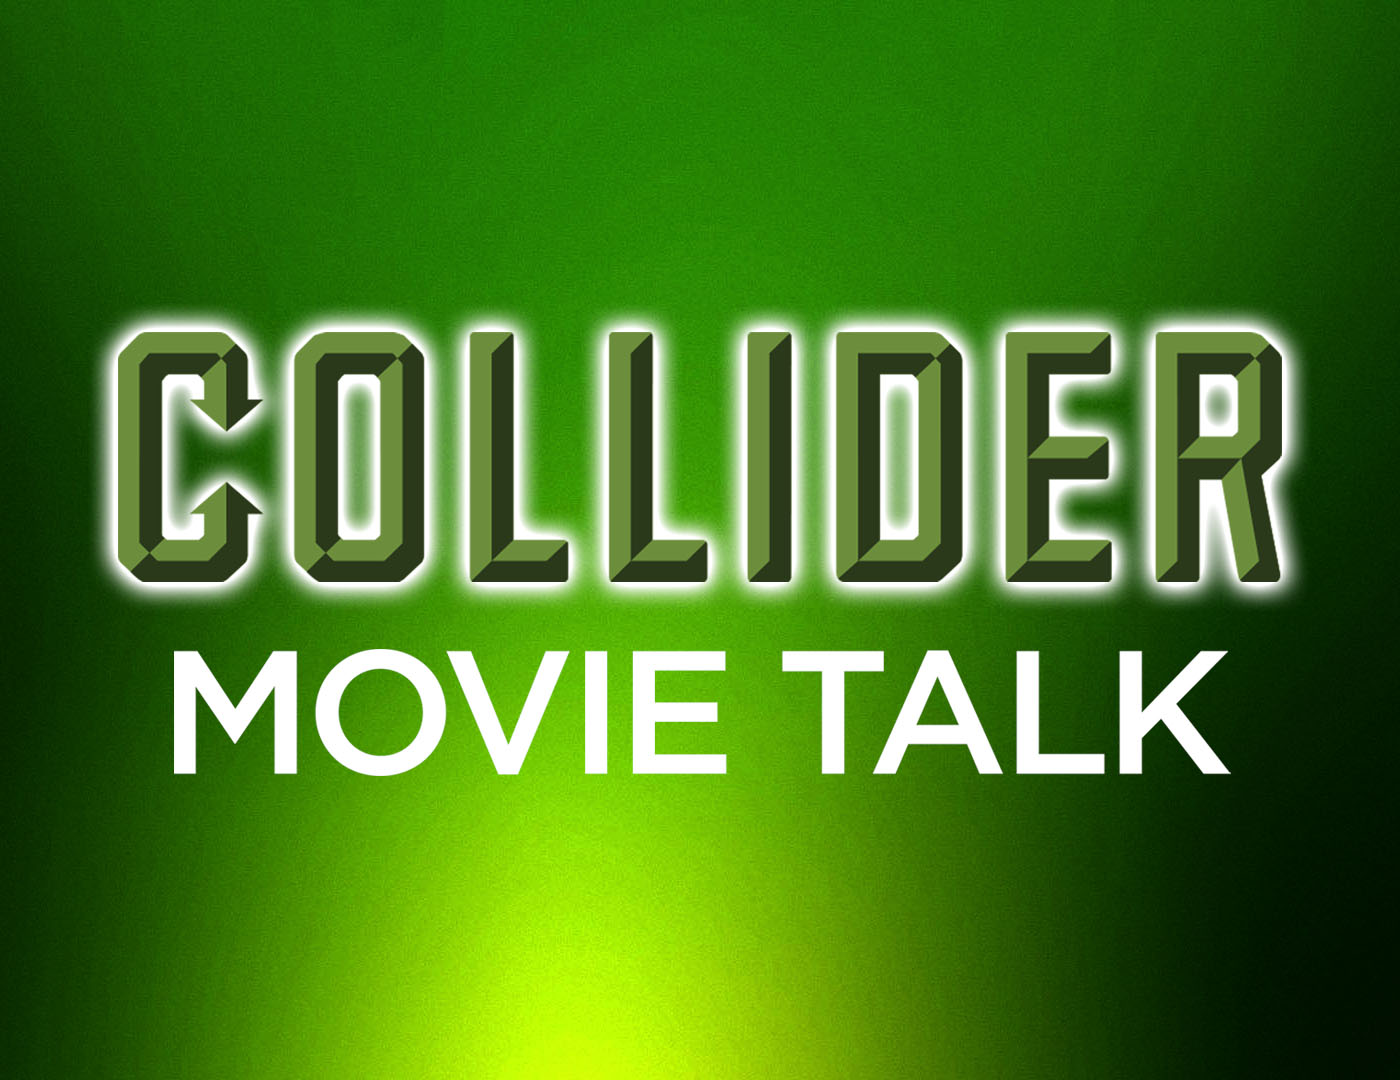 Collider Movie Talk - Jason Bourne Teaser Trailer, Thanos Screen Time In Infinity War